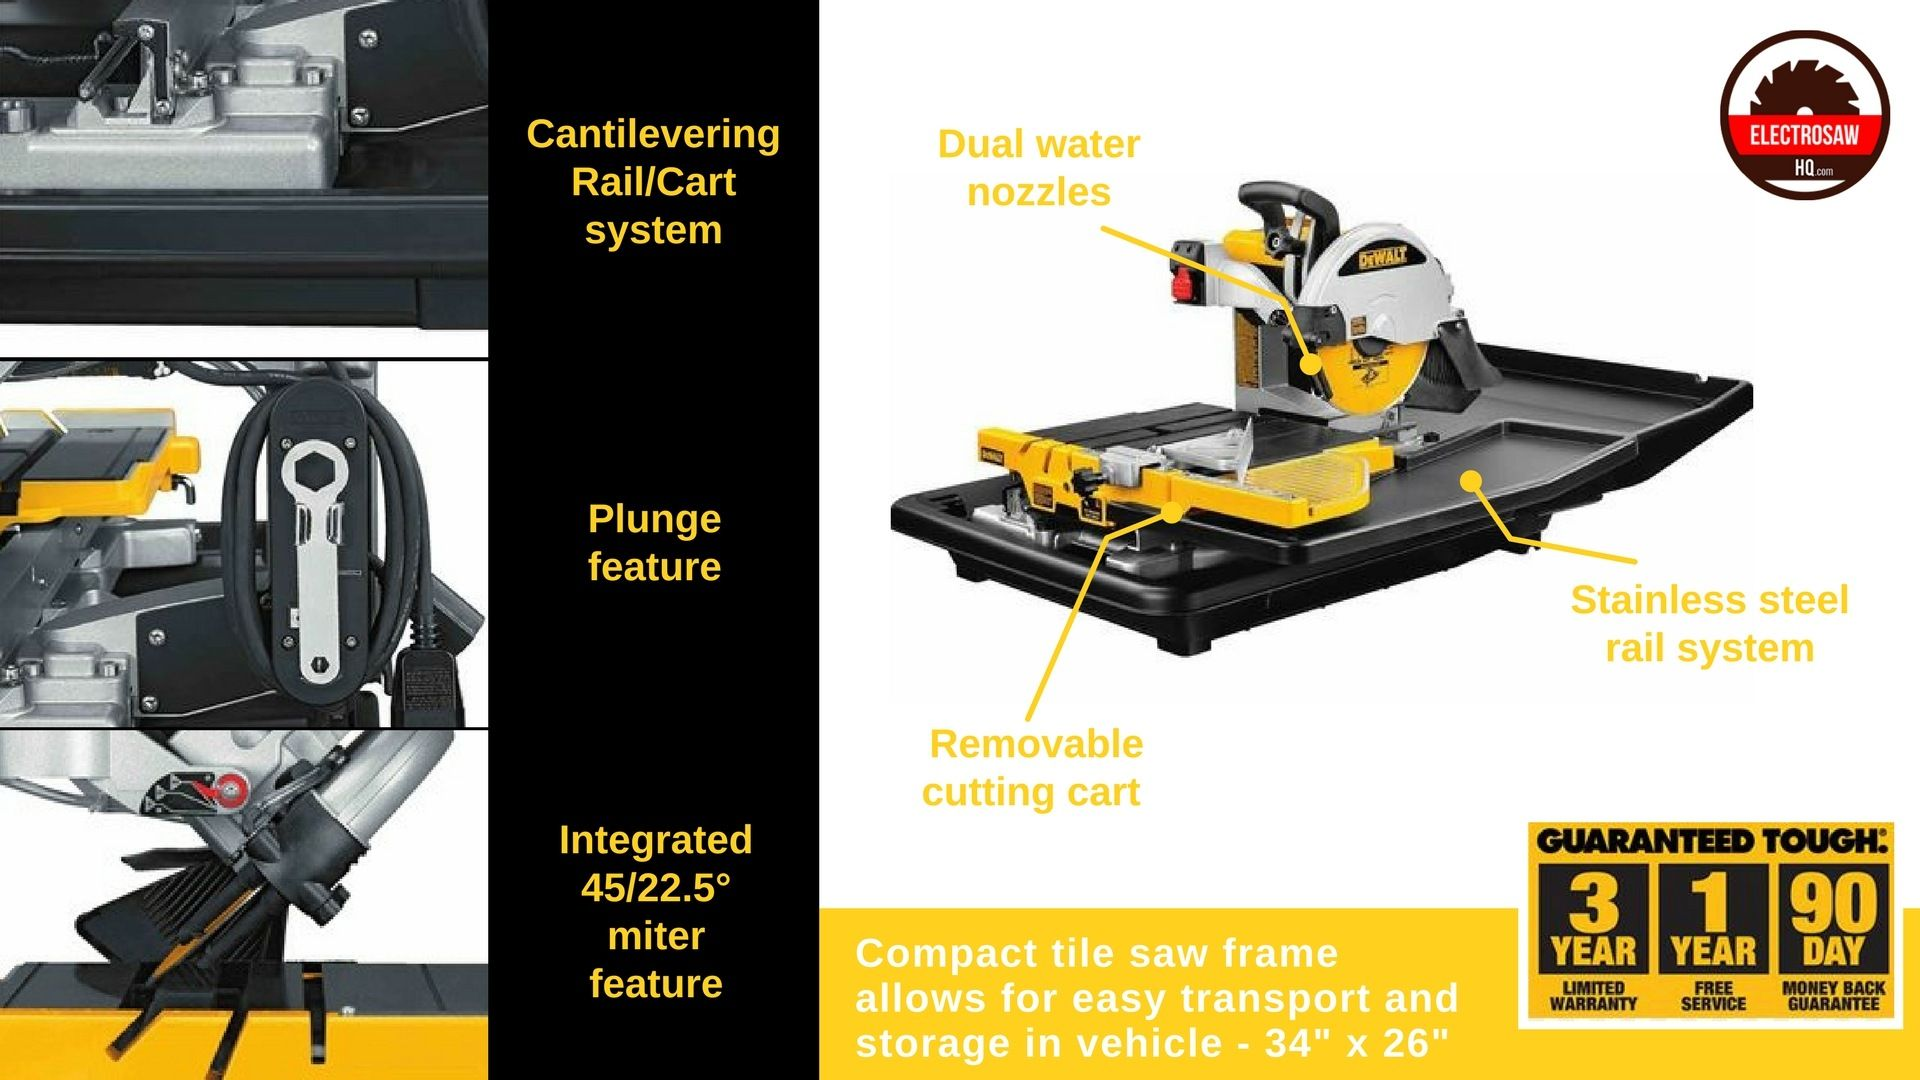 Dewalt D24000 1 5 Horsepower 10 Inch Wet Tile Saw Amazon Home Improvement Dewalt Tools Tile Saw Dewalt